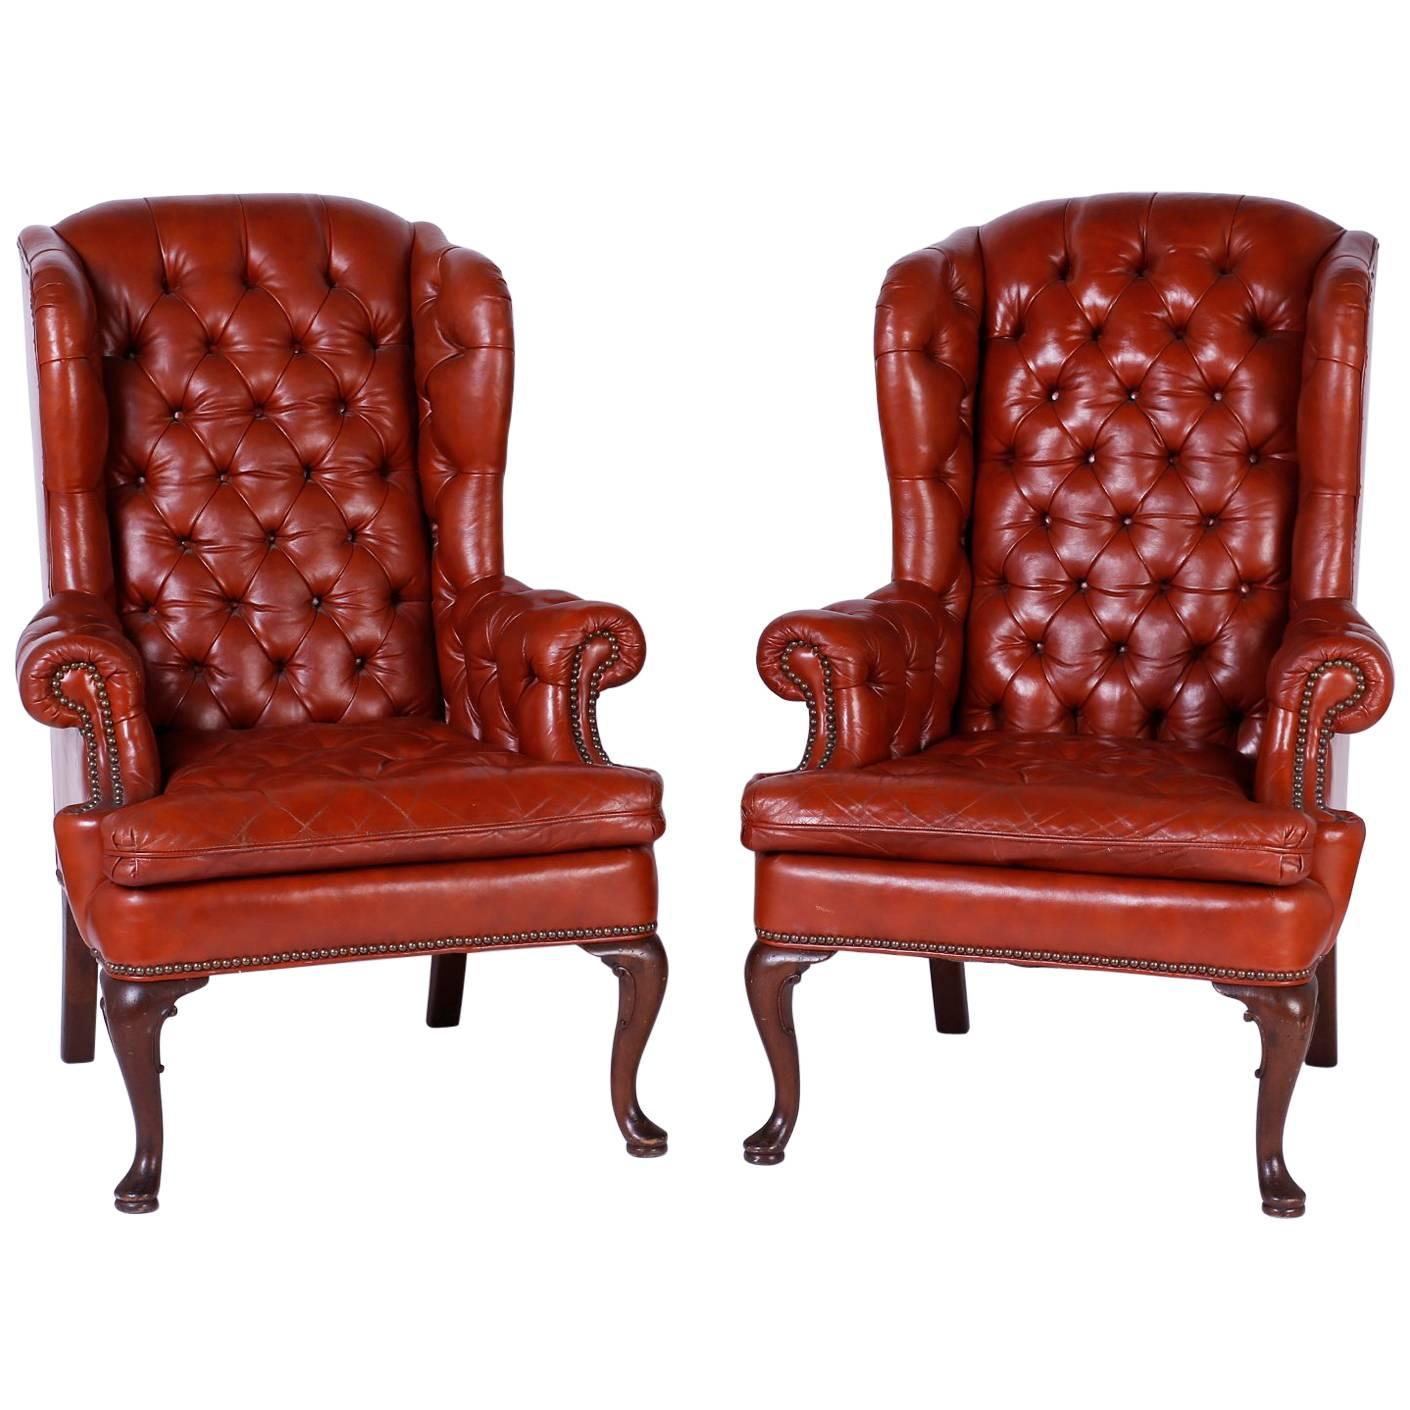 Pair Of Antique Leather Wing Back Club Chairs